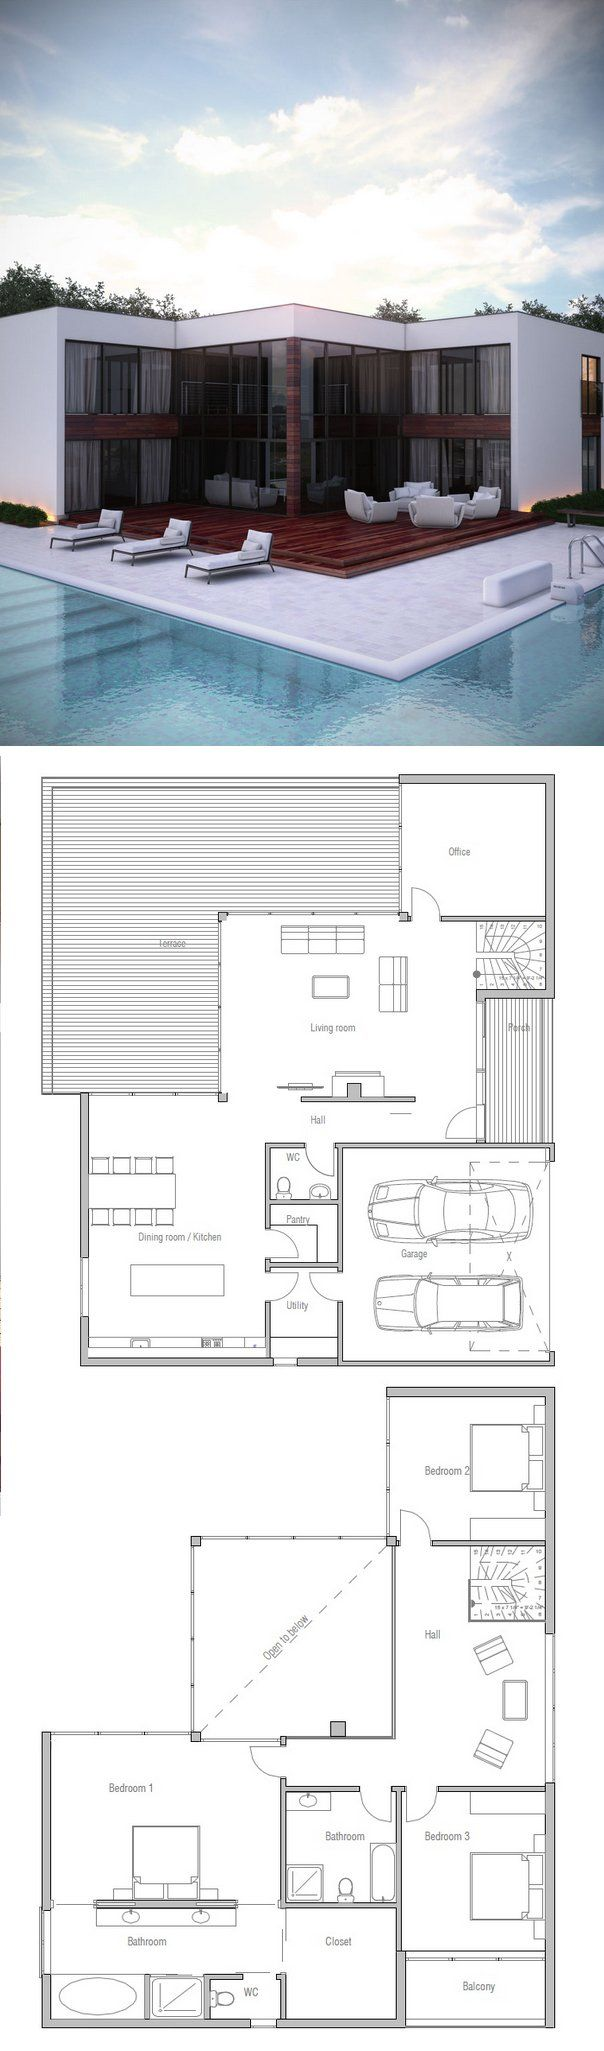 Very cool 2 story modern loft house floor plan dont even need the swimming pool just a deck i like the open area on the floor looking down to the